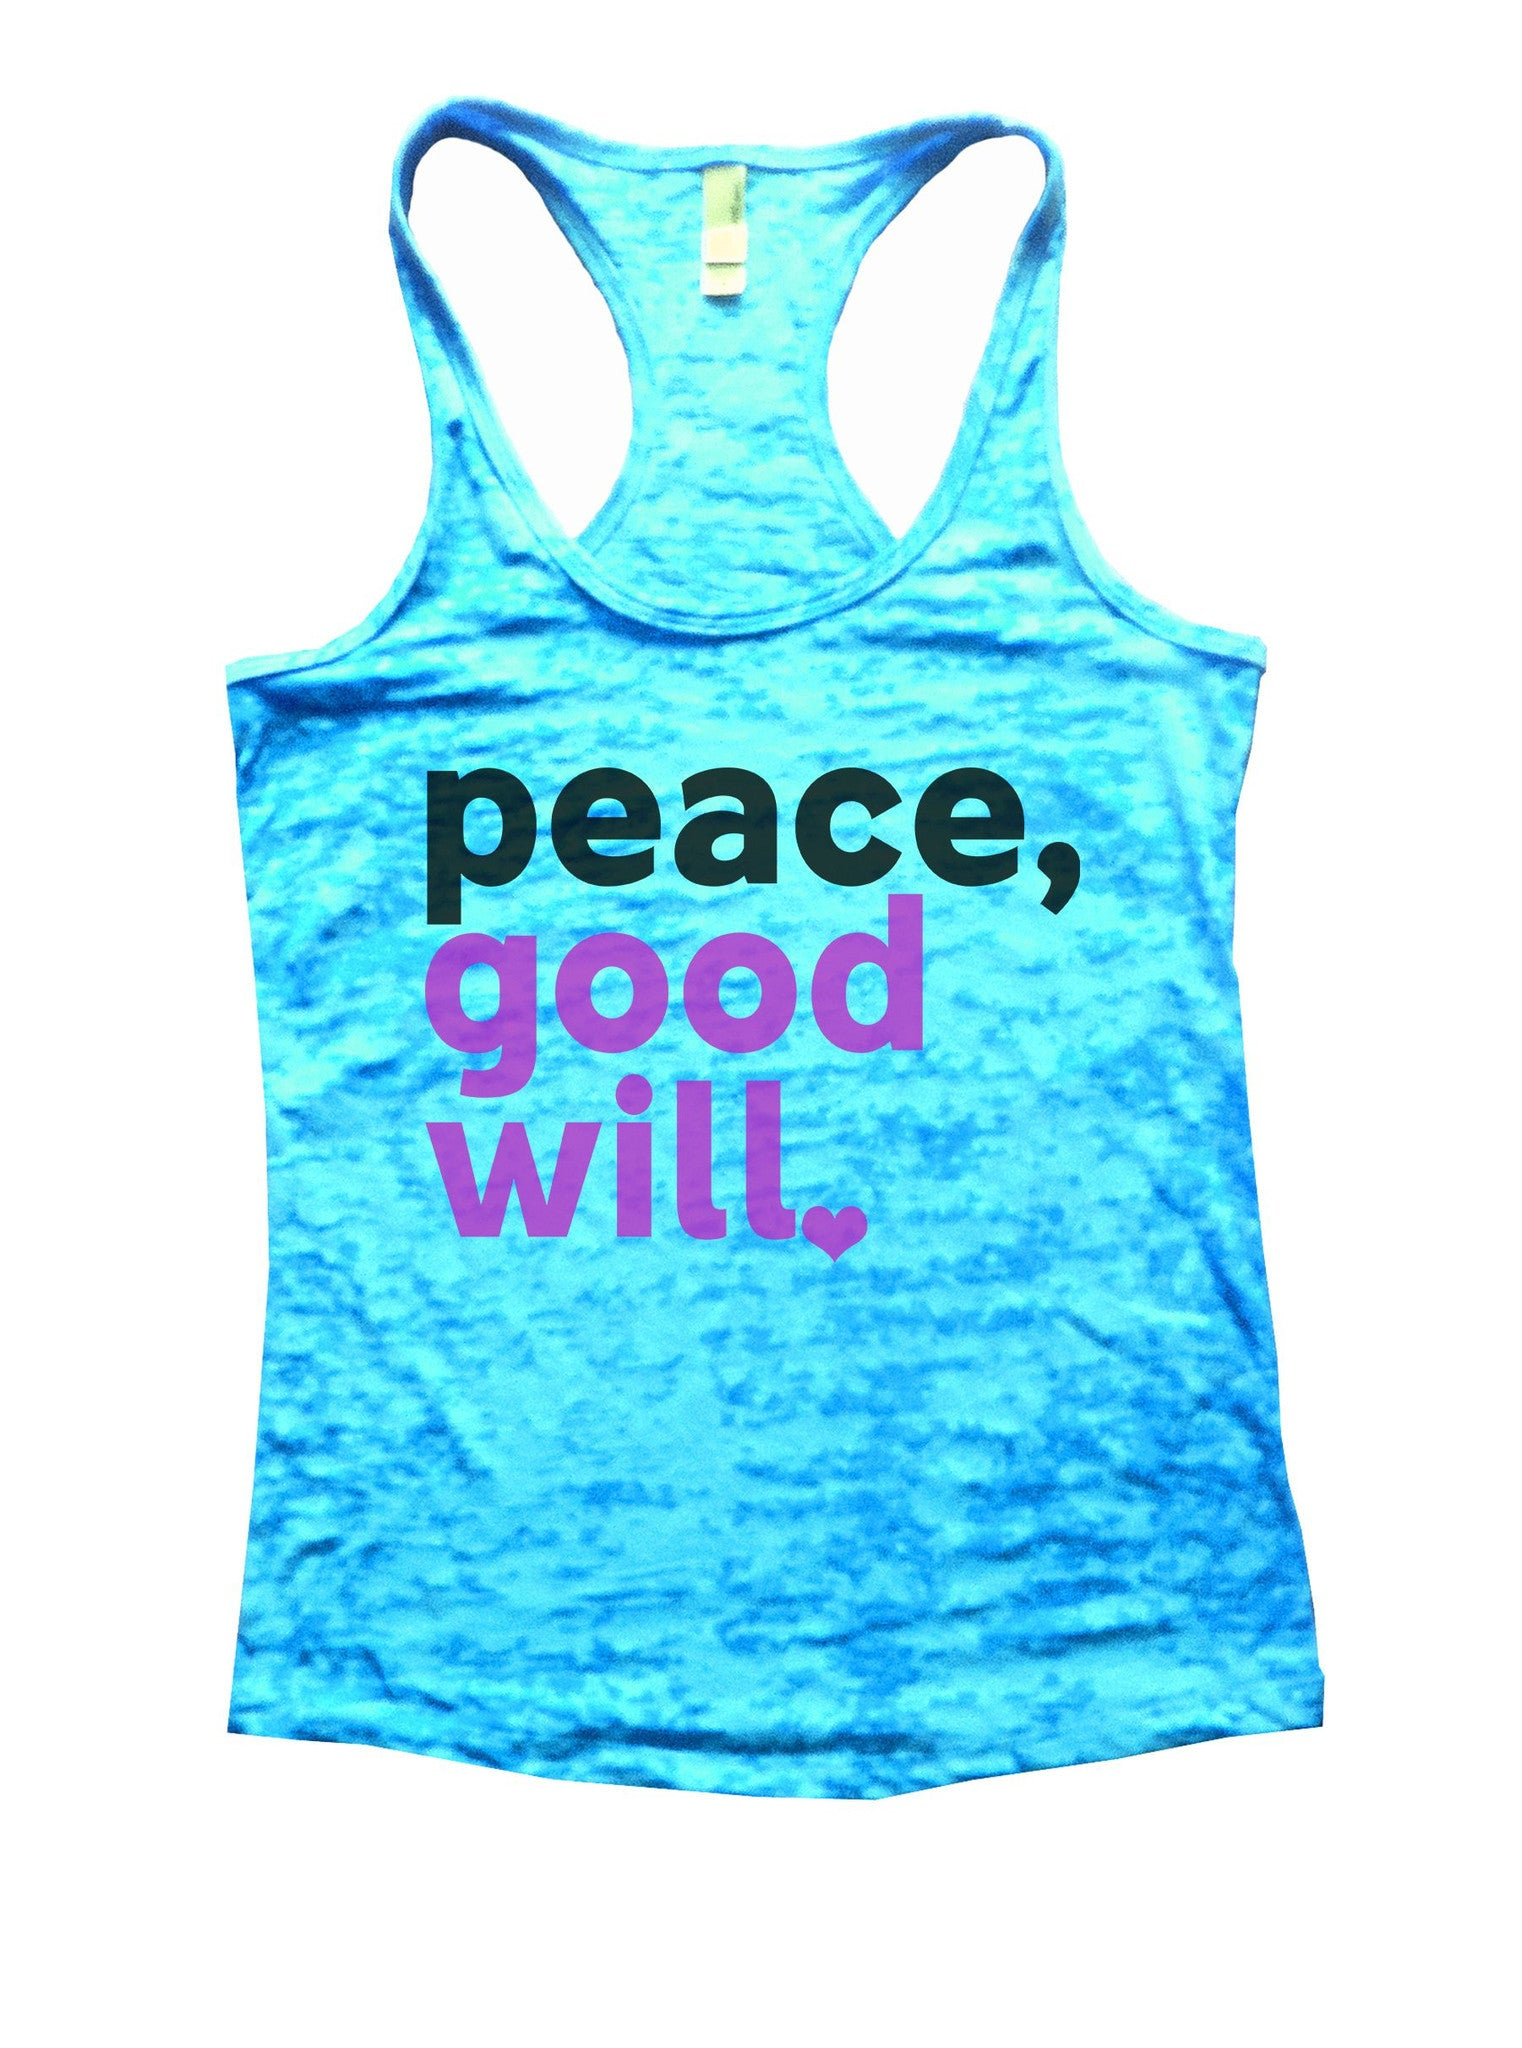 Peace, Good Will Burnout Tank Top By BurnoutTankTops.com - 1078 - Funny Shirts Tank Tops Burnouts and Triblends  - 4